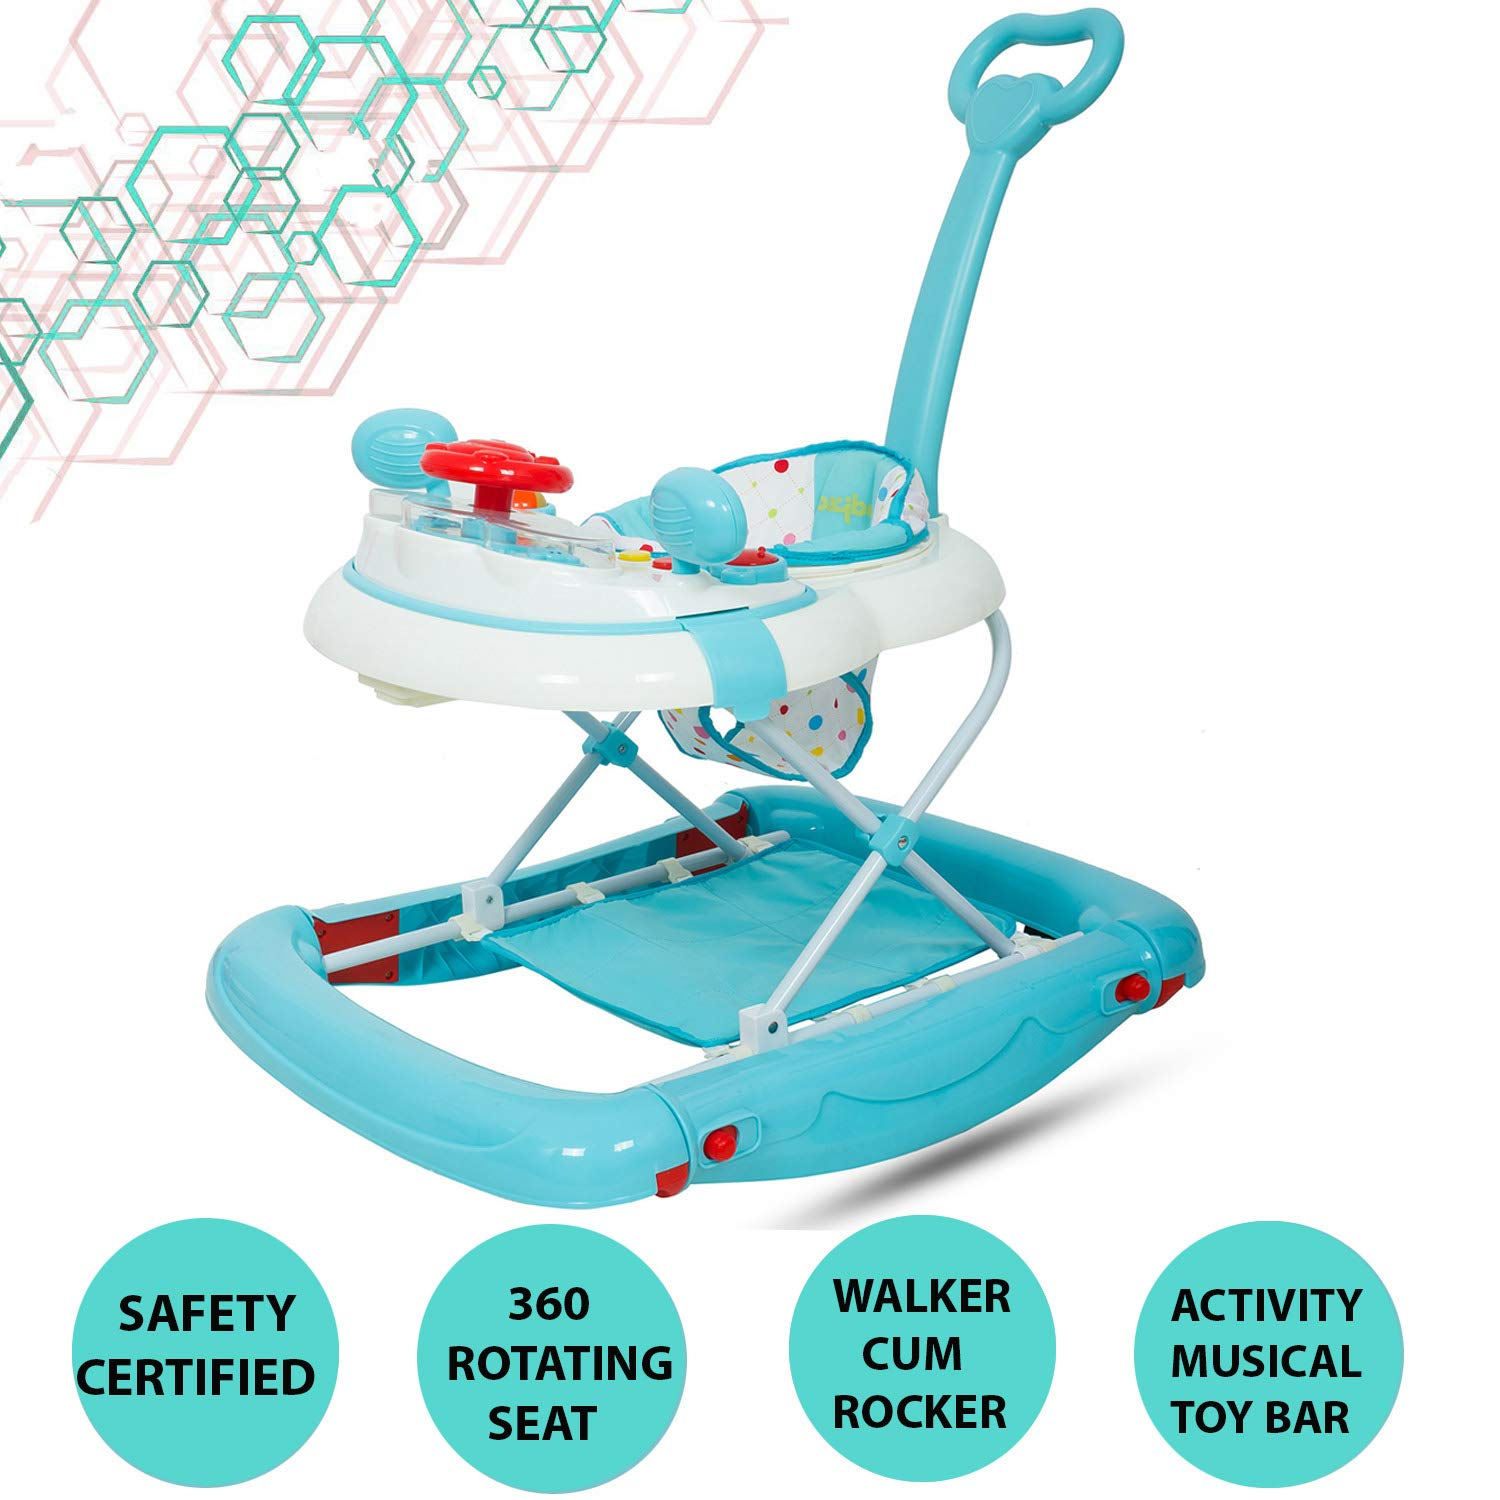 Baybee Enforcer Baby Walker Cum Rocker | Music & Light Function with Adjustable Height and Push Handle Bar - Blue